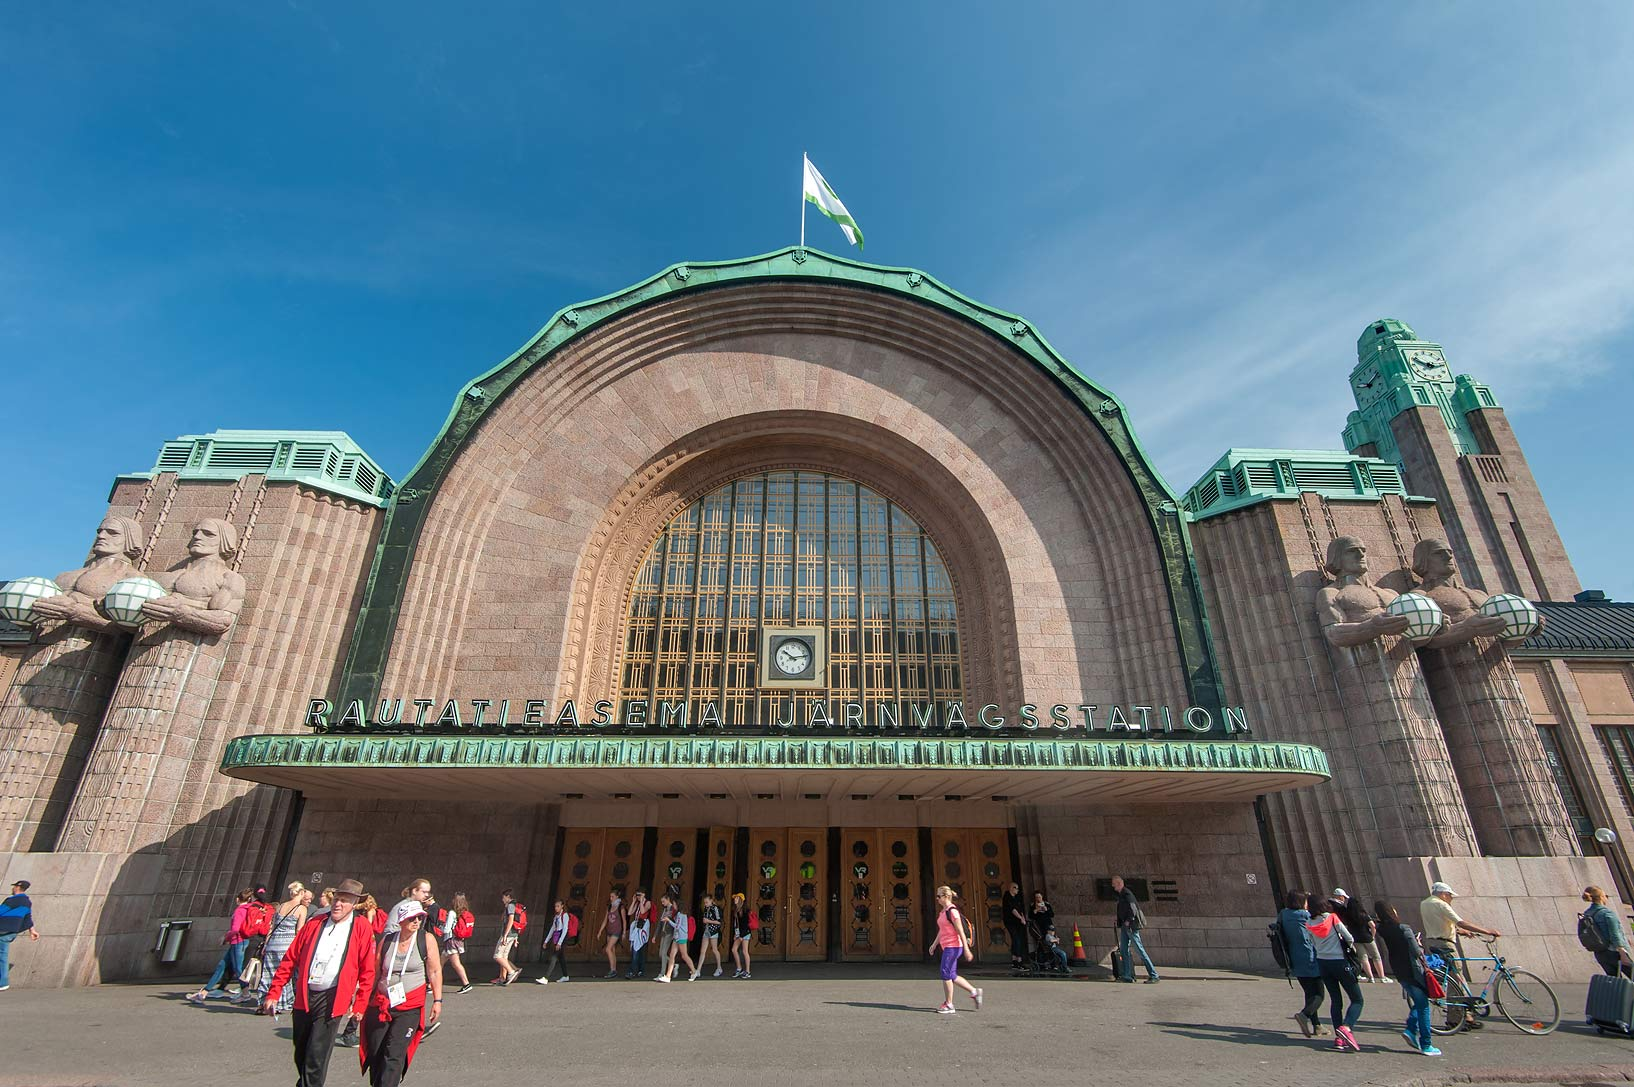 Main entrance of Central Railway Station. Helsinki, Finland